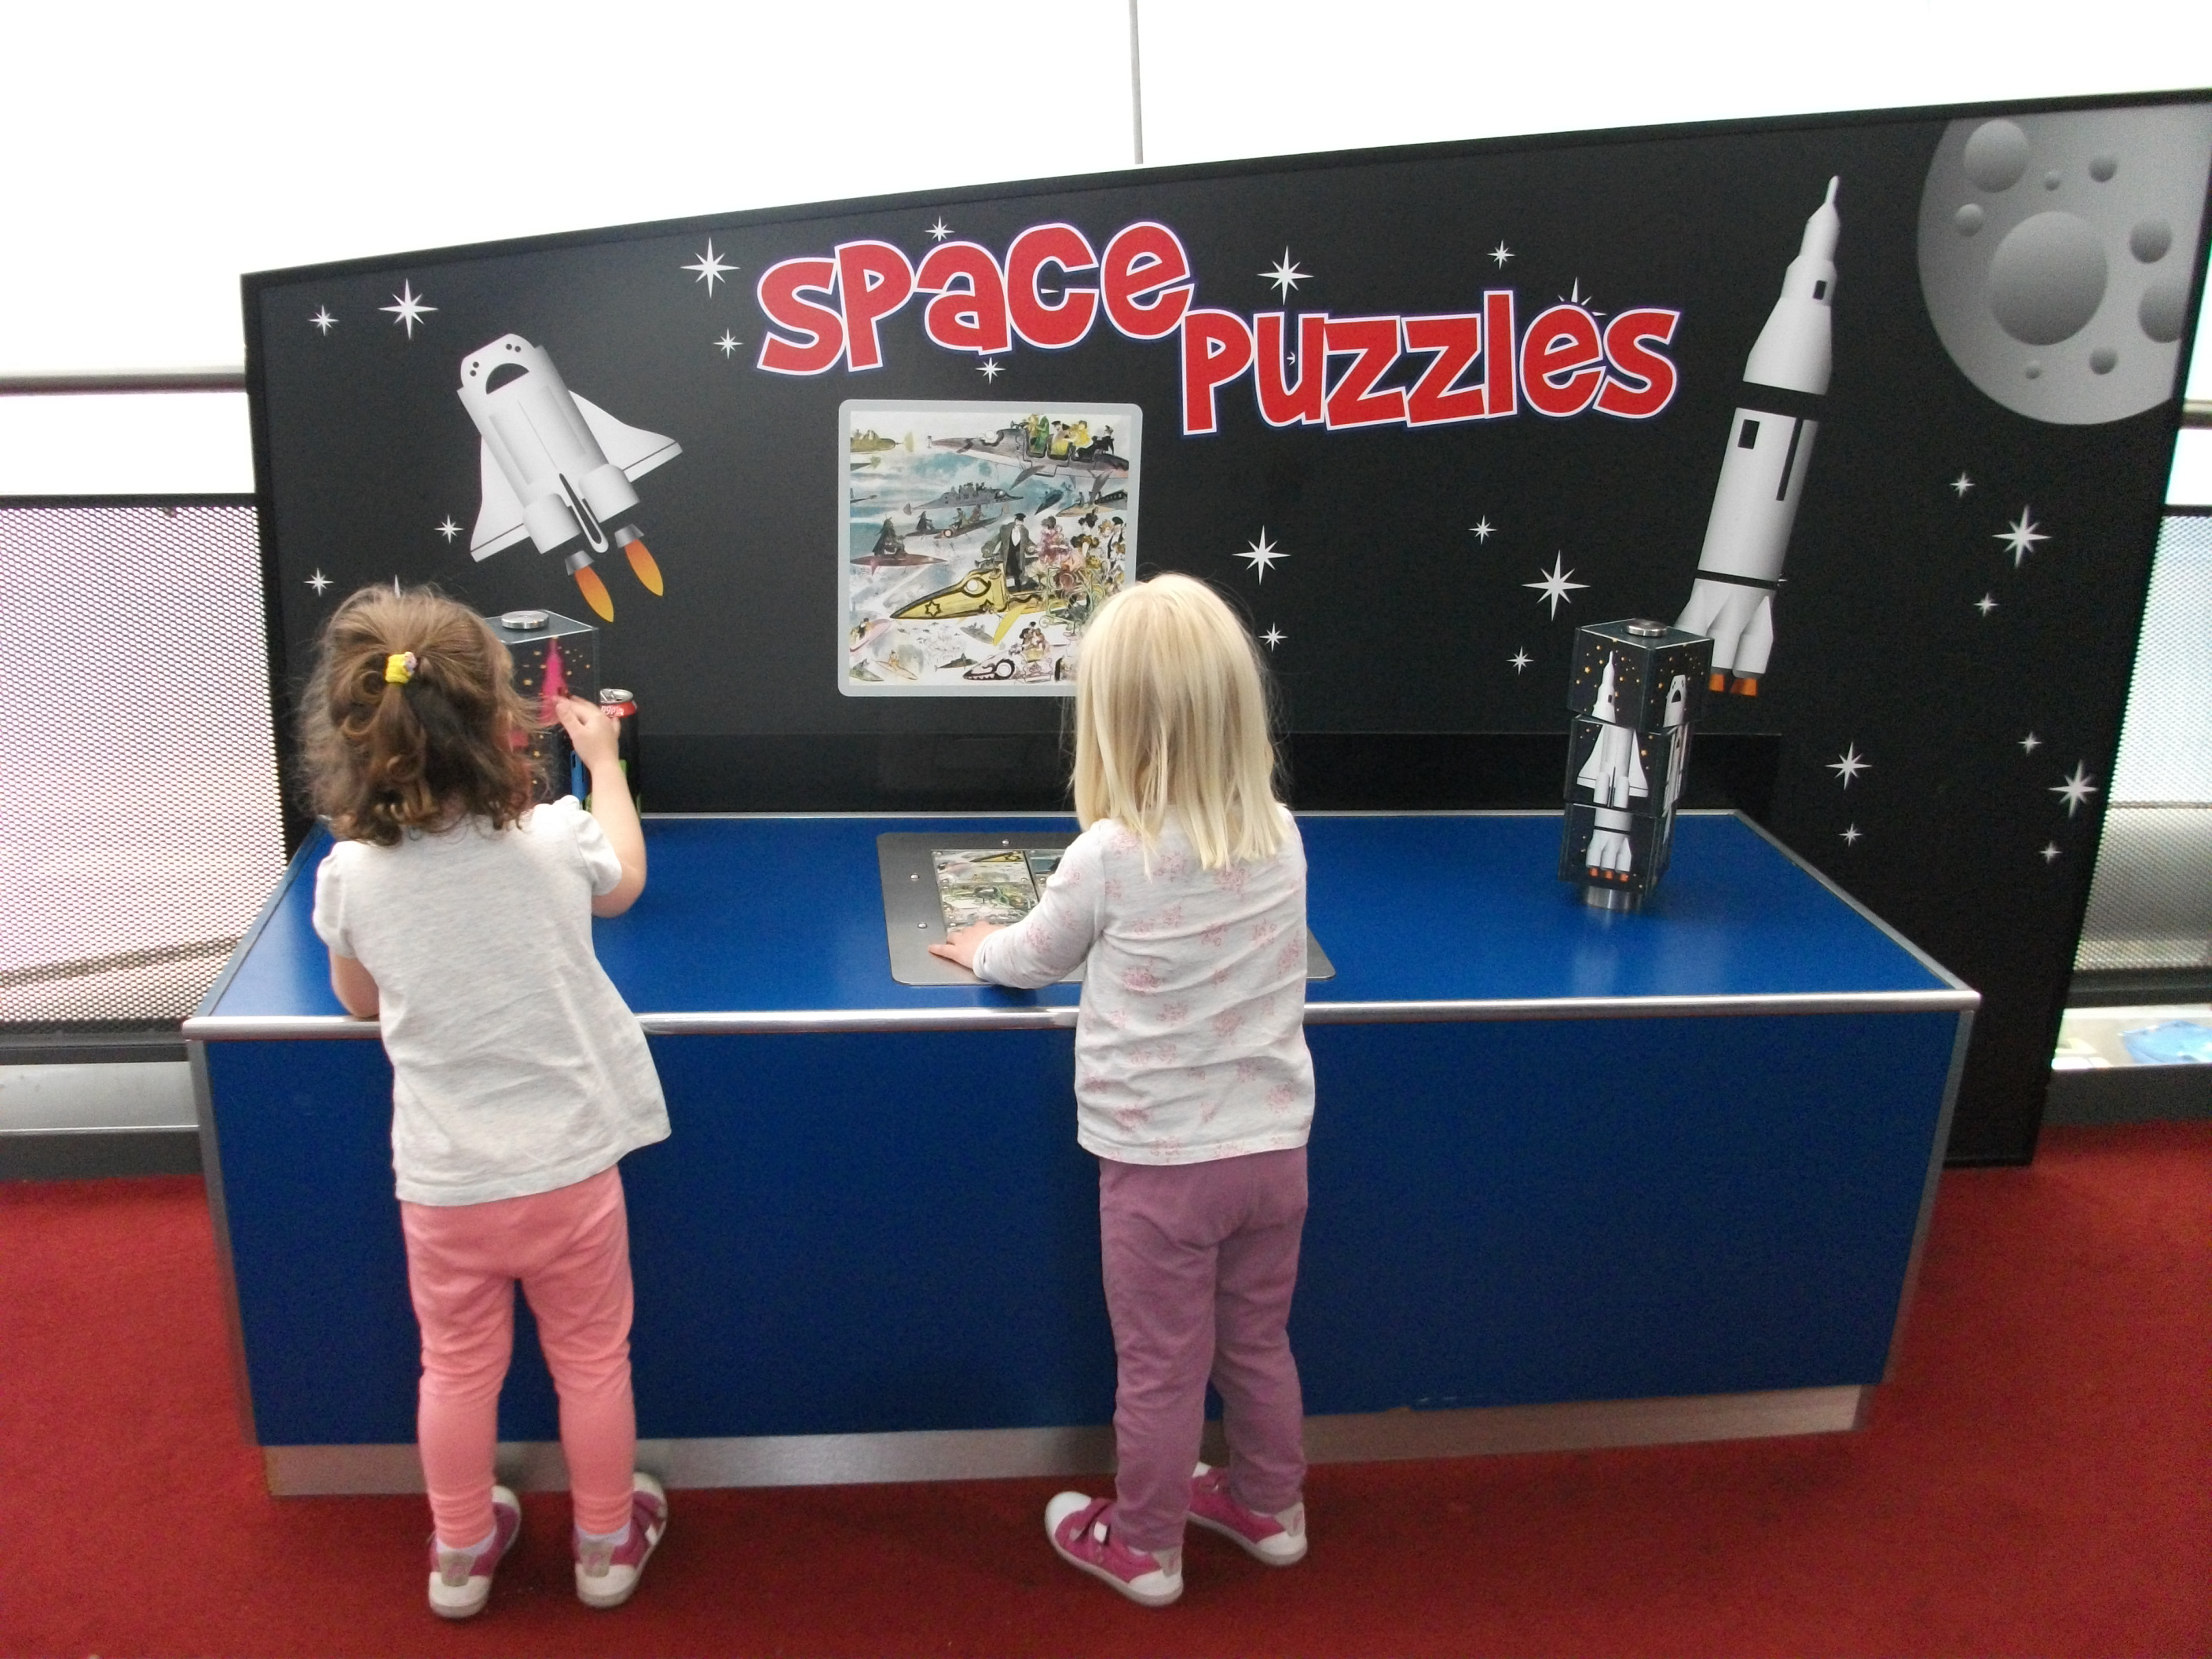 Puzzles for the kids to do at the Space Centre